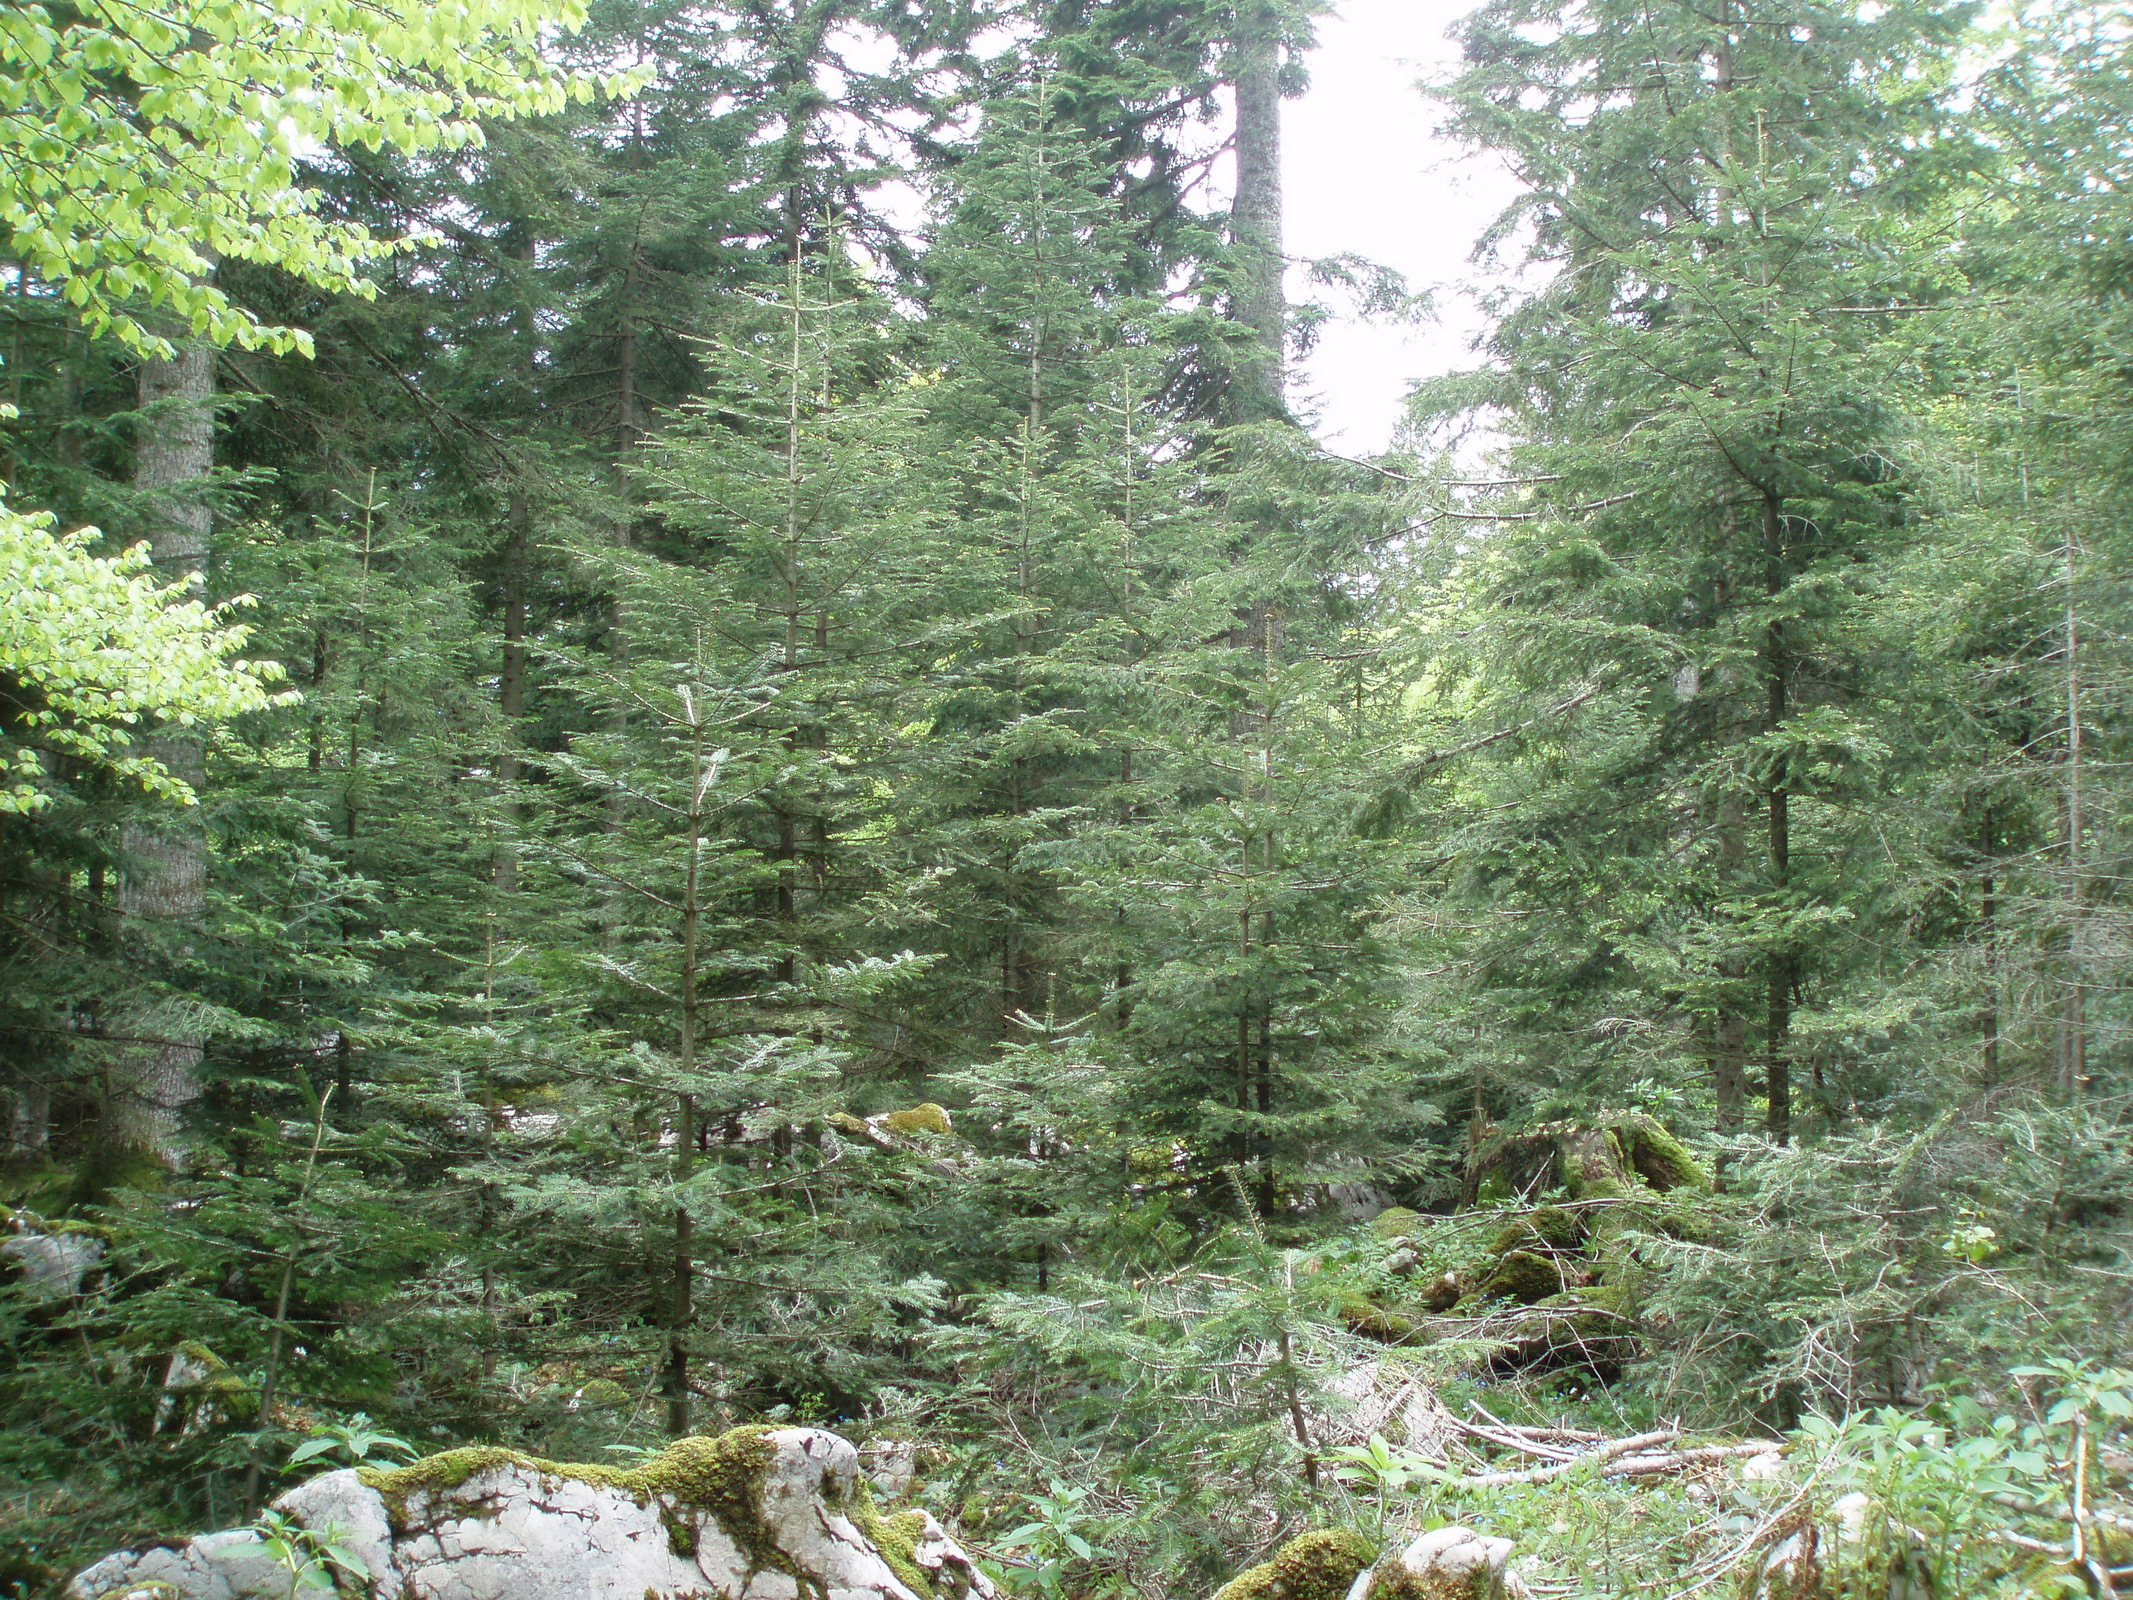 Region of Gorski kotar, Natural regeneration of Silver fir after single-tree selection cutting (C) Anic